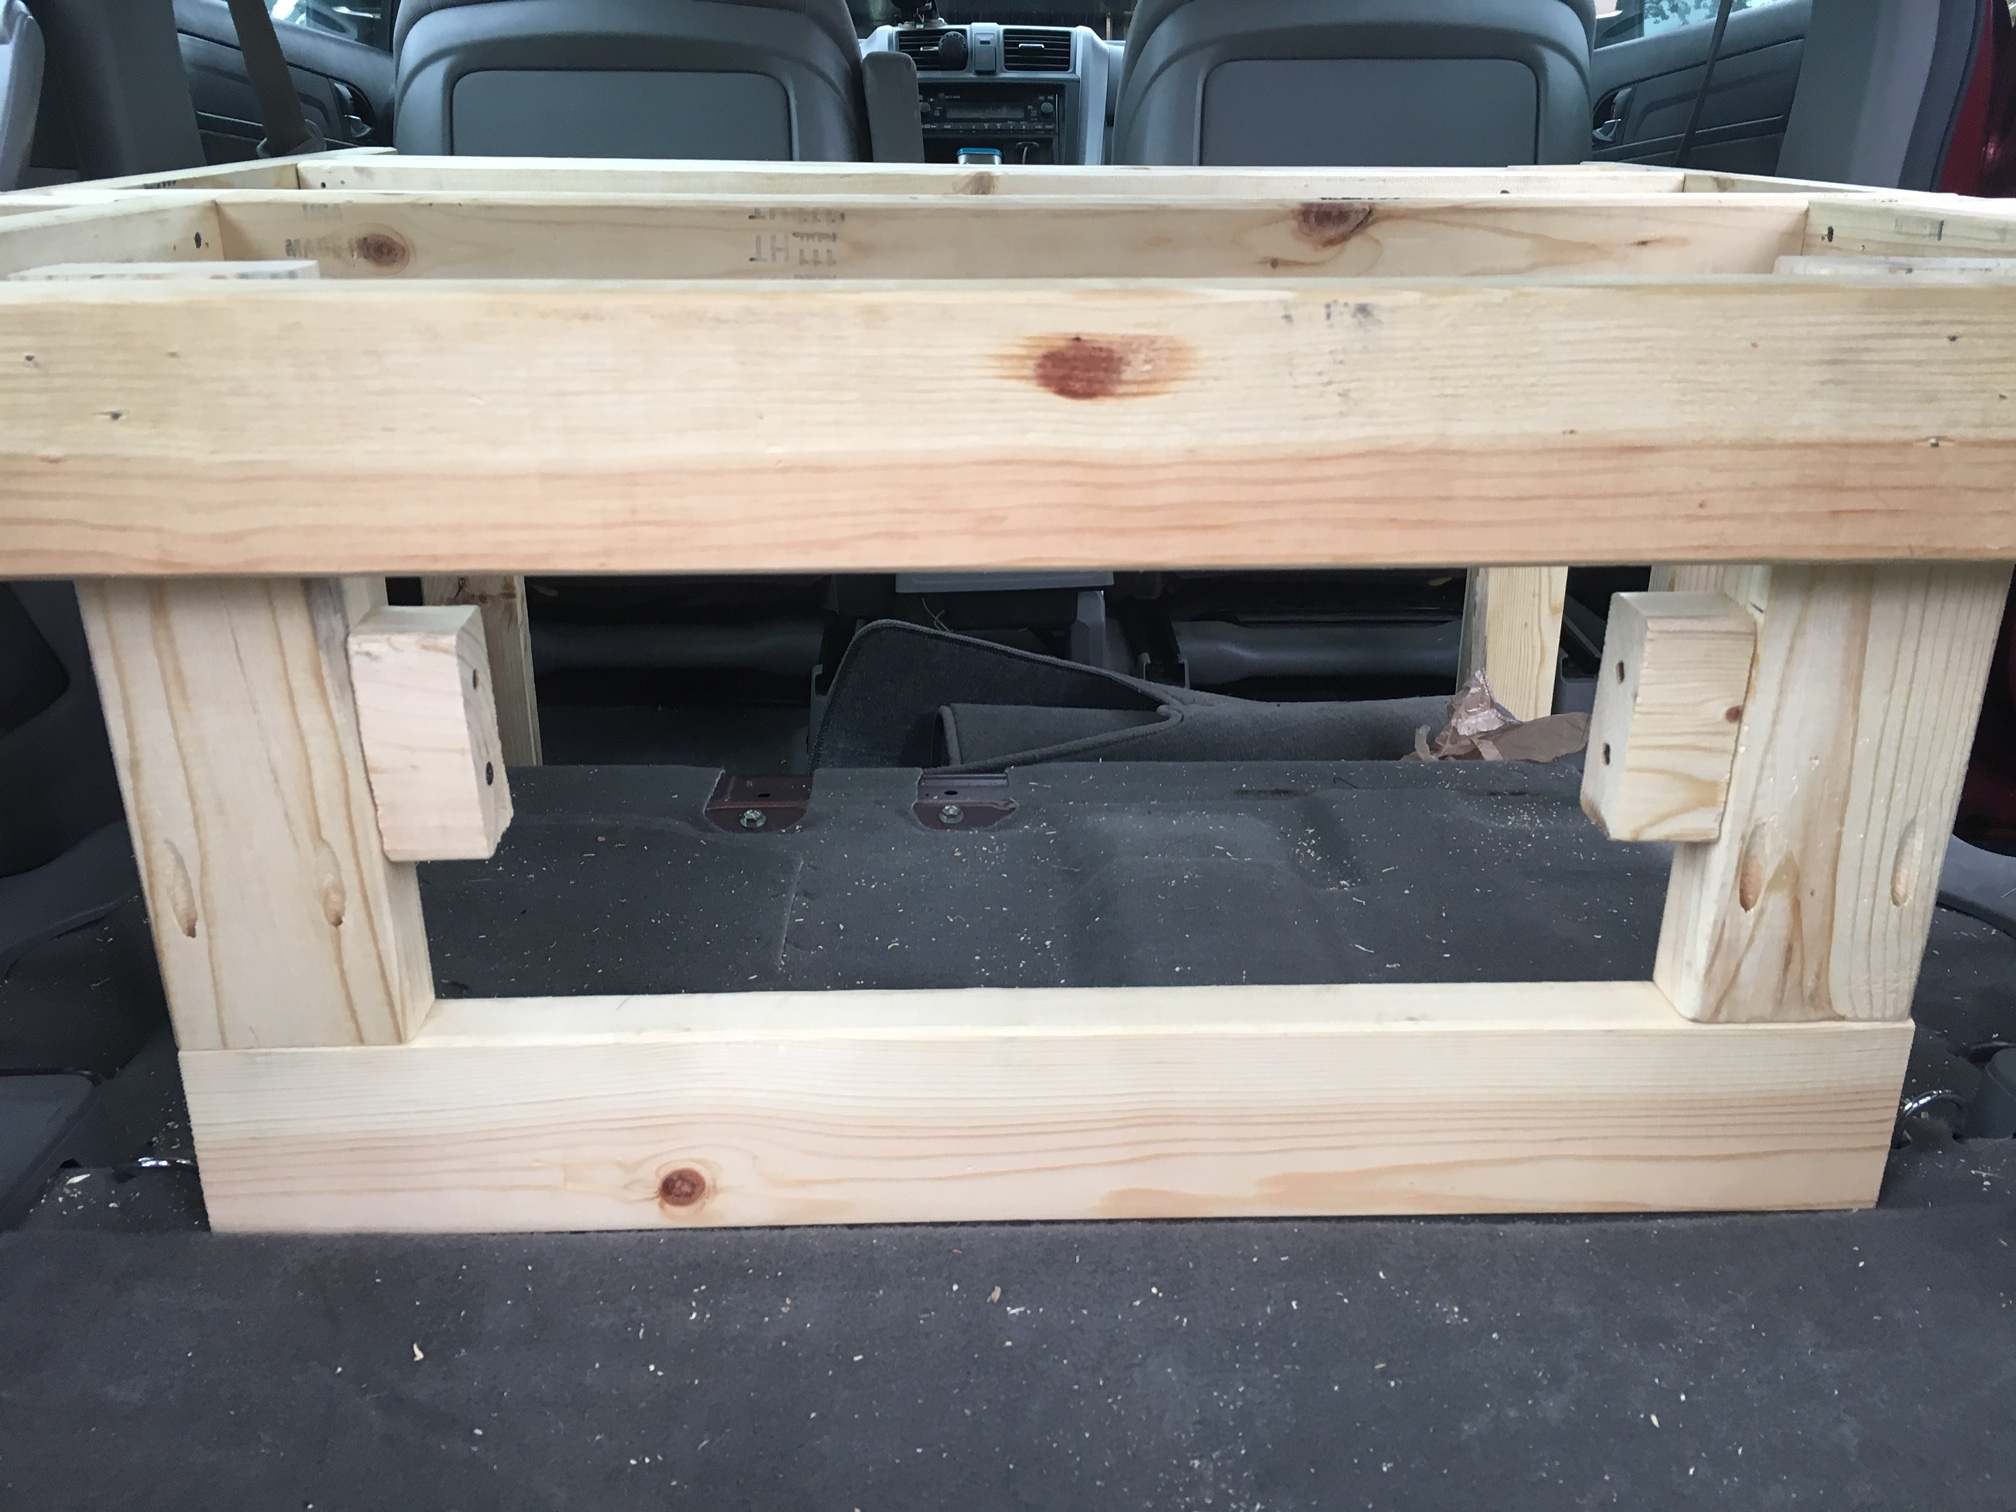 Separating the front and back space below the platform and adding some more strength